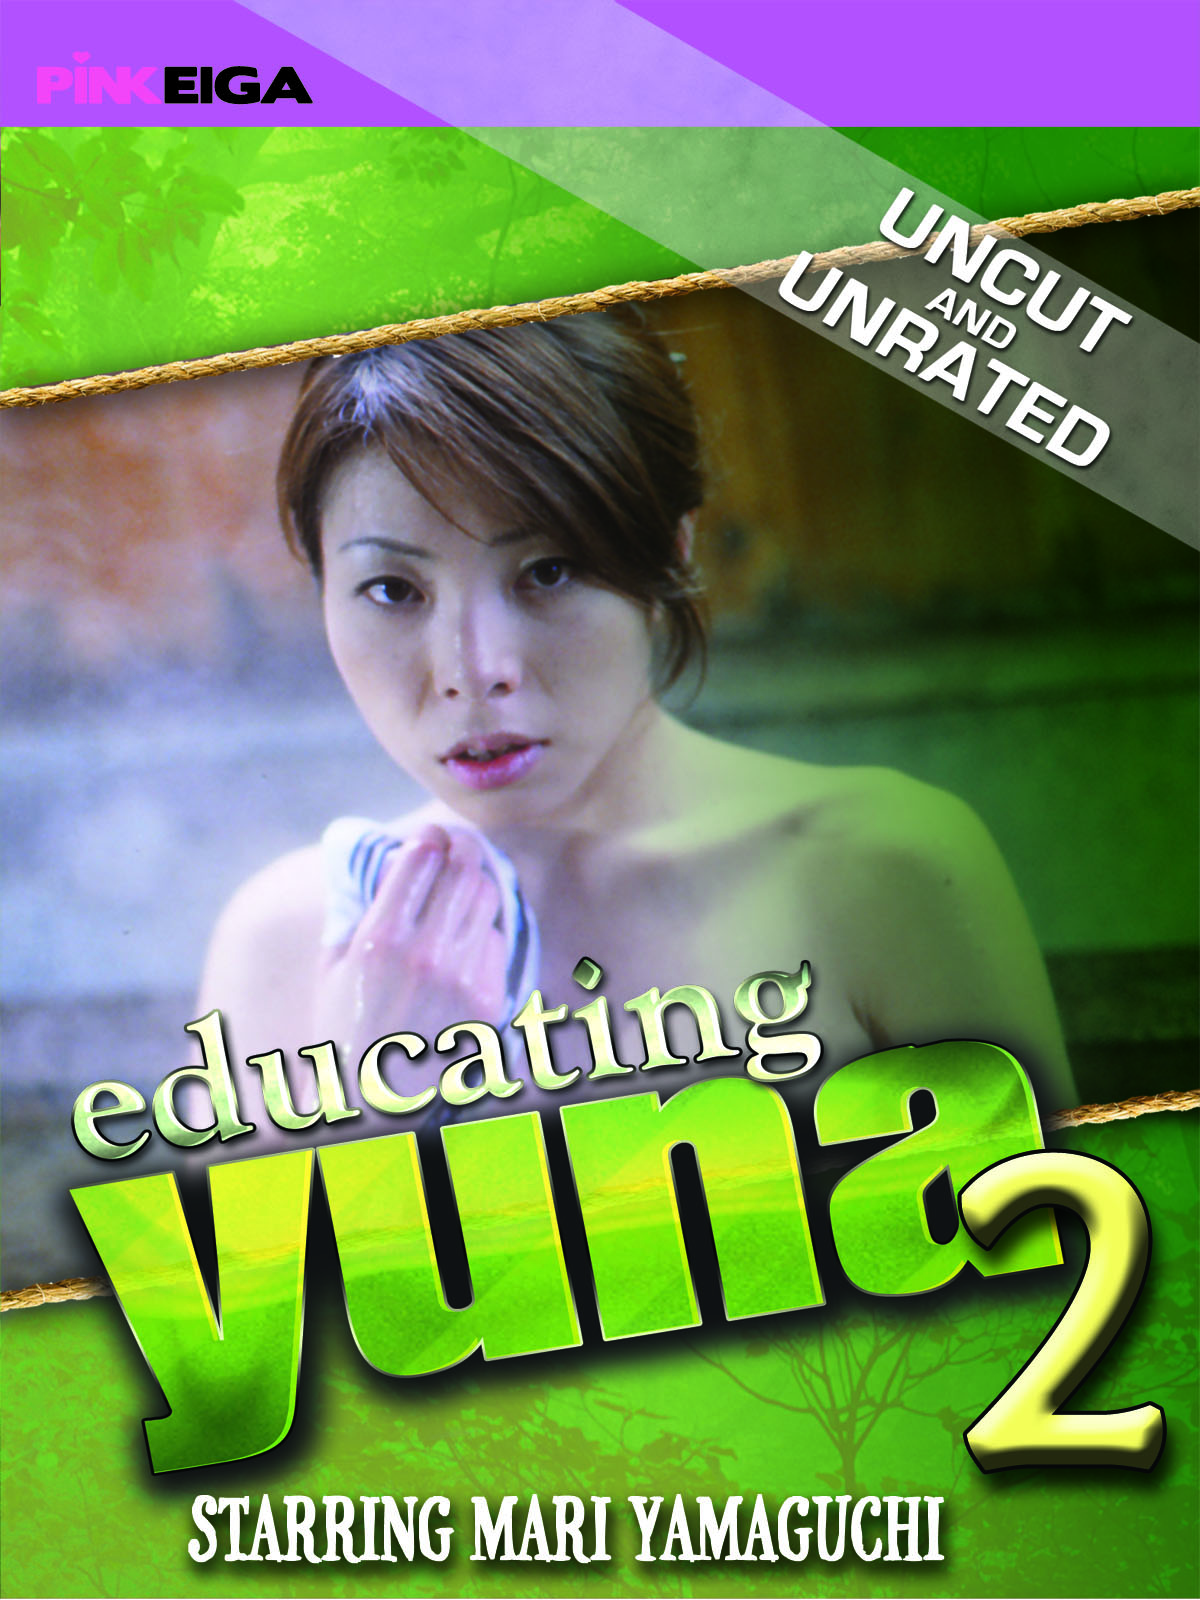 Educating Yuna 2 -HD- DOWNLOAD TO OWN